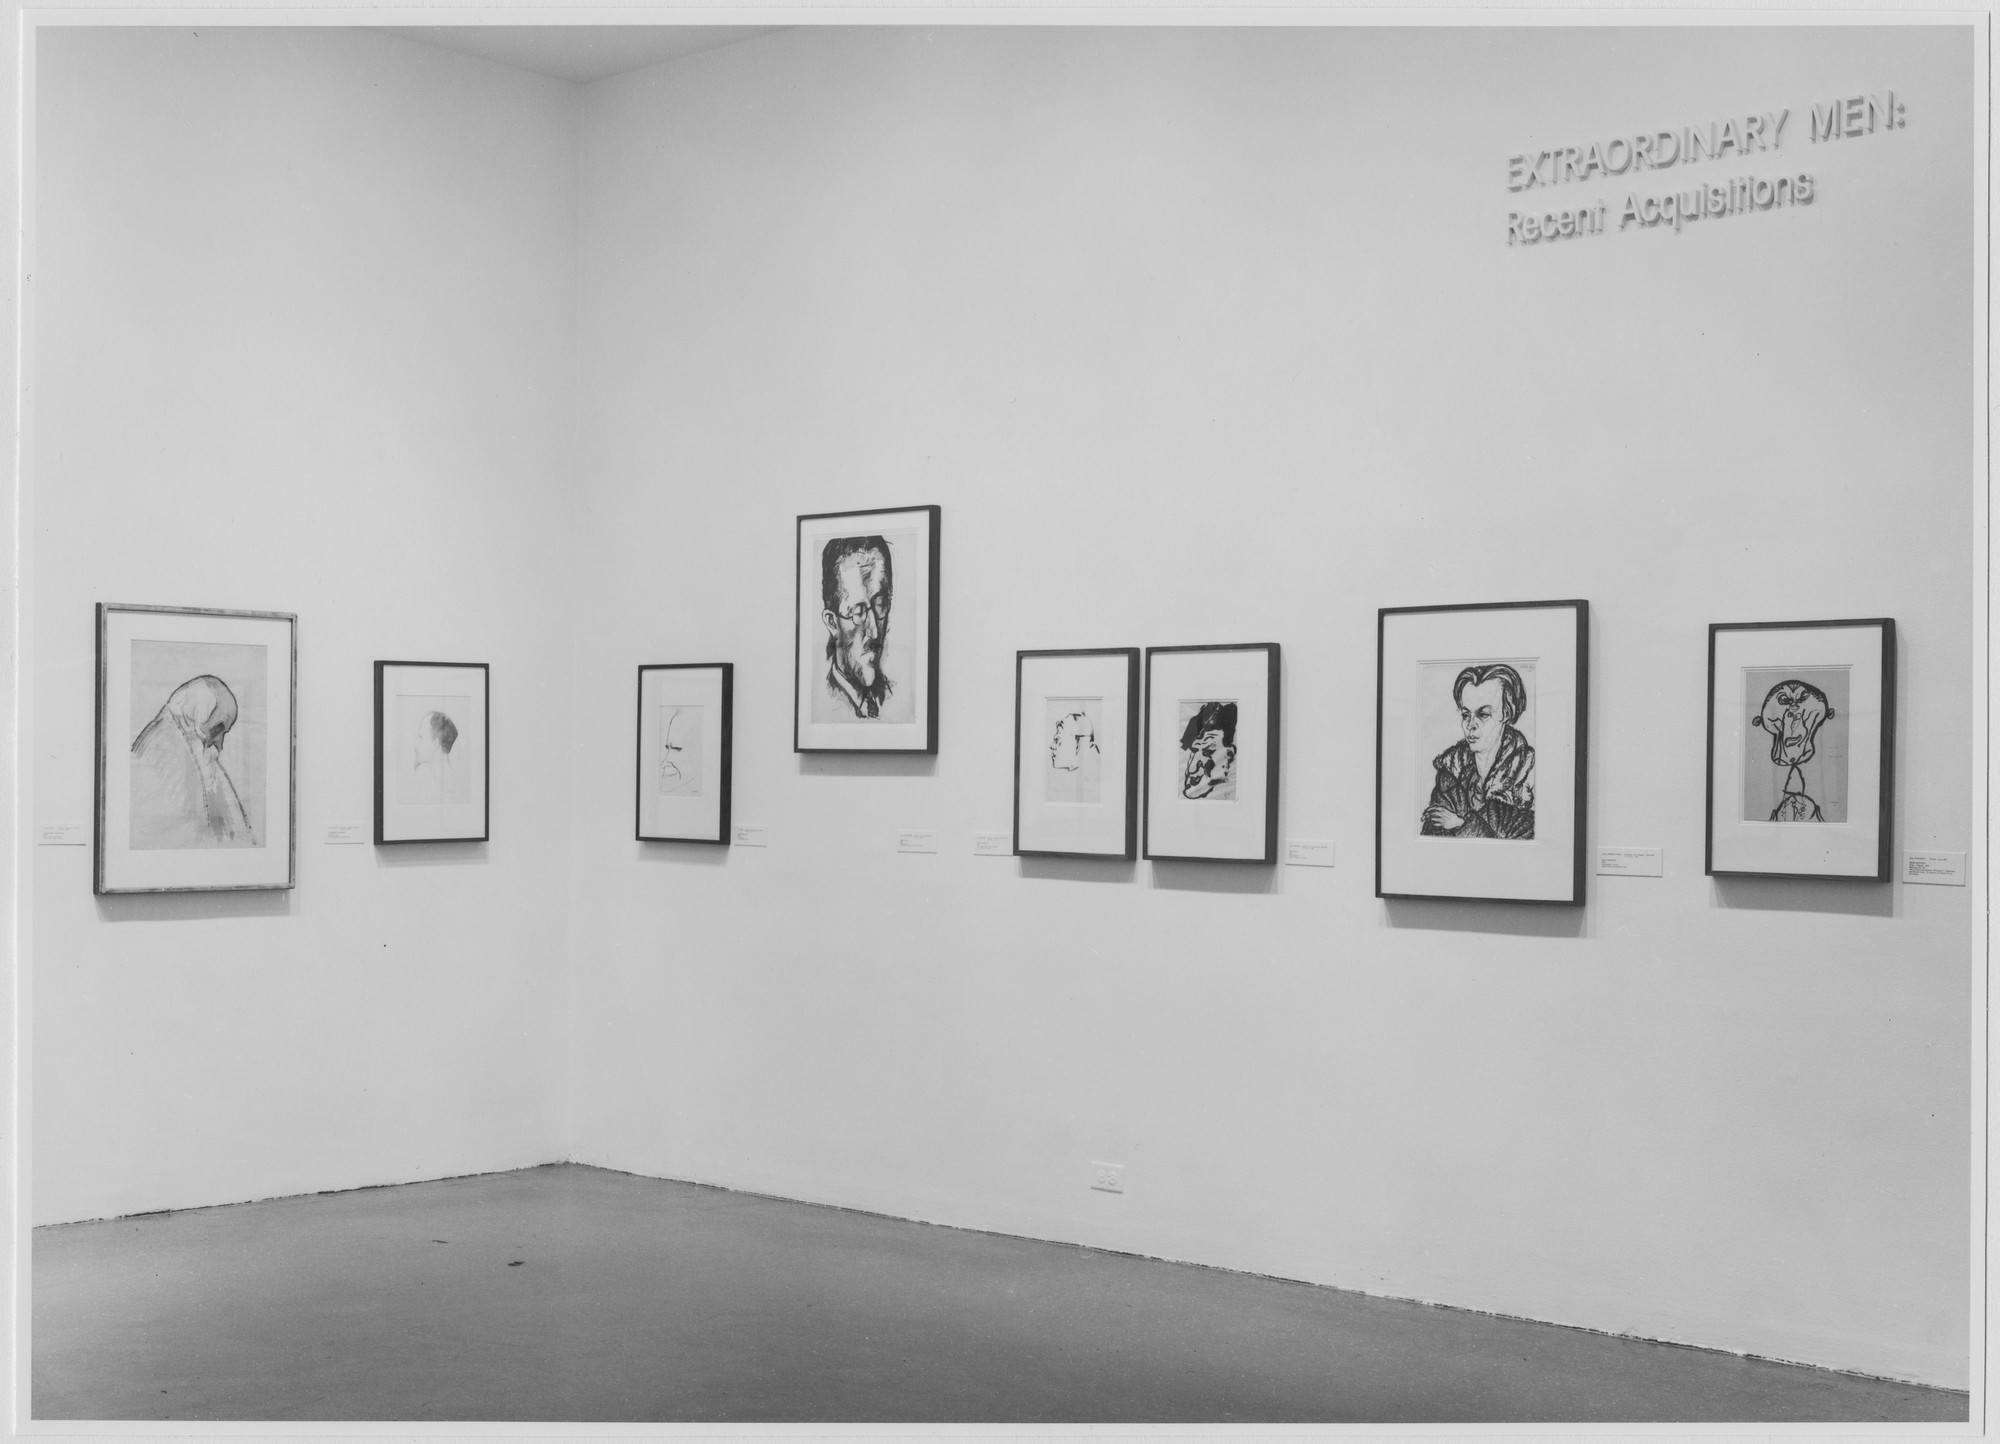 "Installation view of the exhibition, ""Extraordinary Men."" June 2, 1977–July 17, 1977. Photographic Archive. The Museum of Modern Art Archives, New York. IN1174.1. Photograph by Katherine Keller."